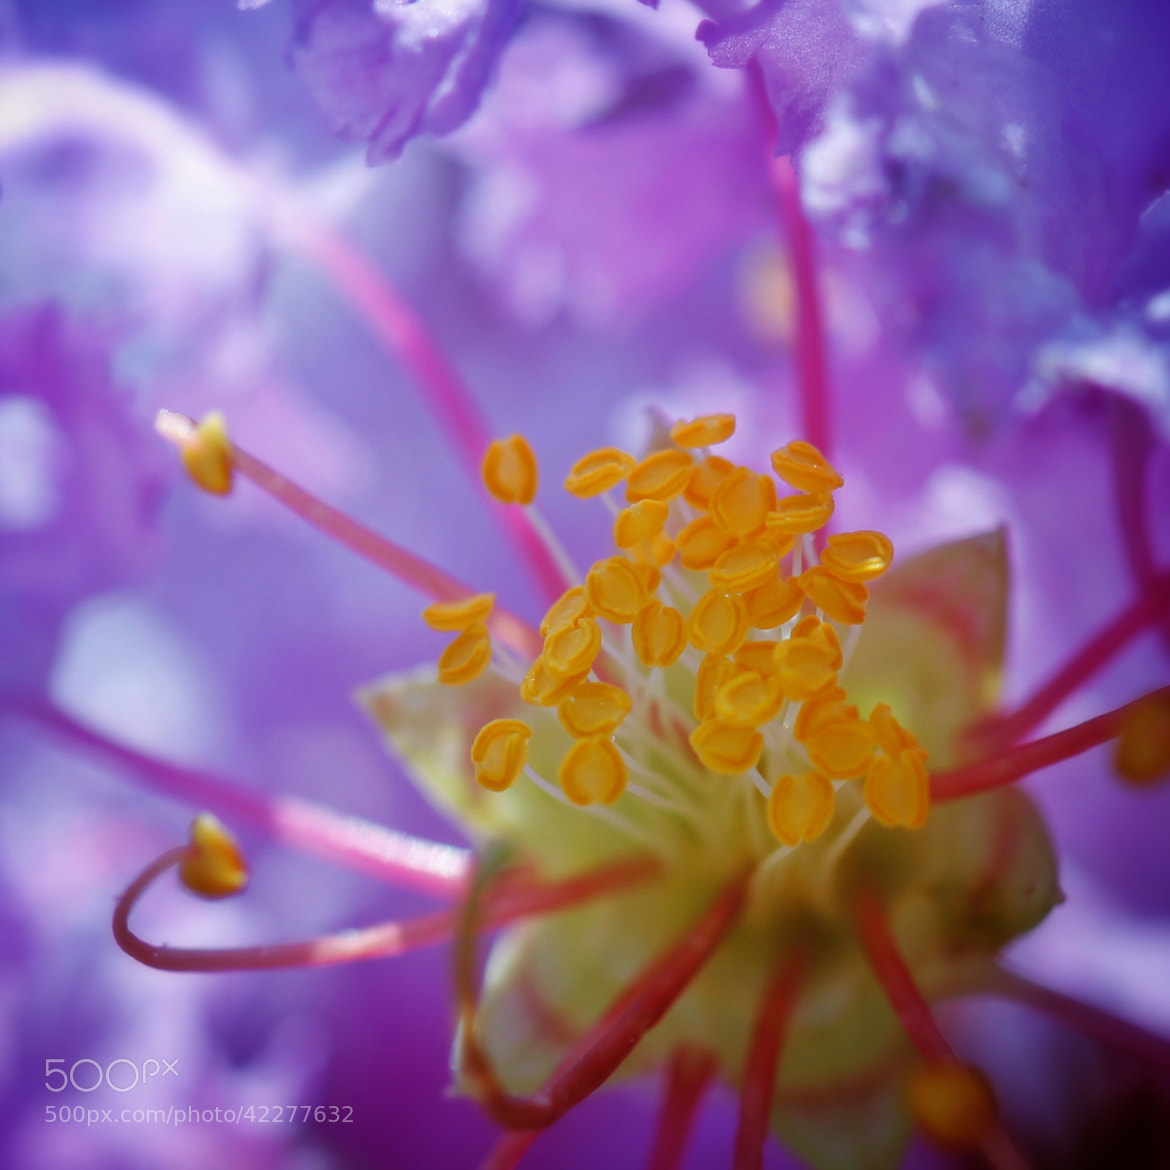 Heart of the Crepe Myrtle by Lisa Miller on 500px.com